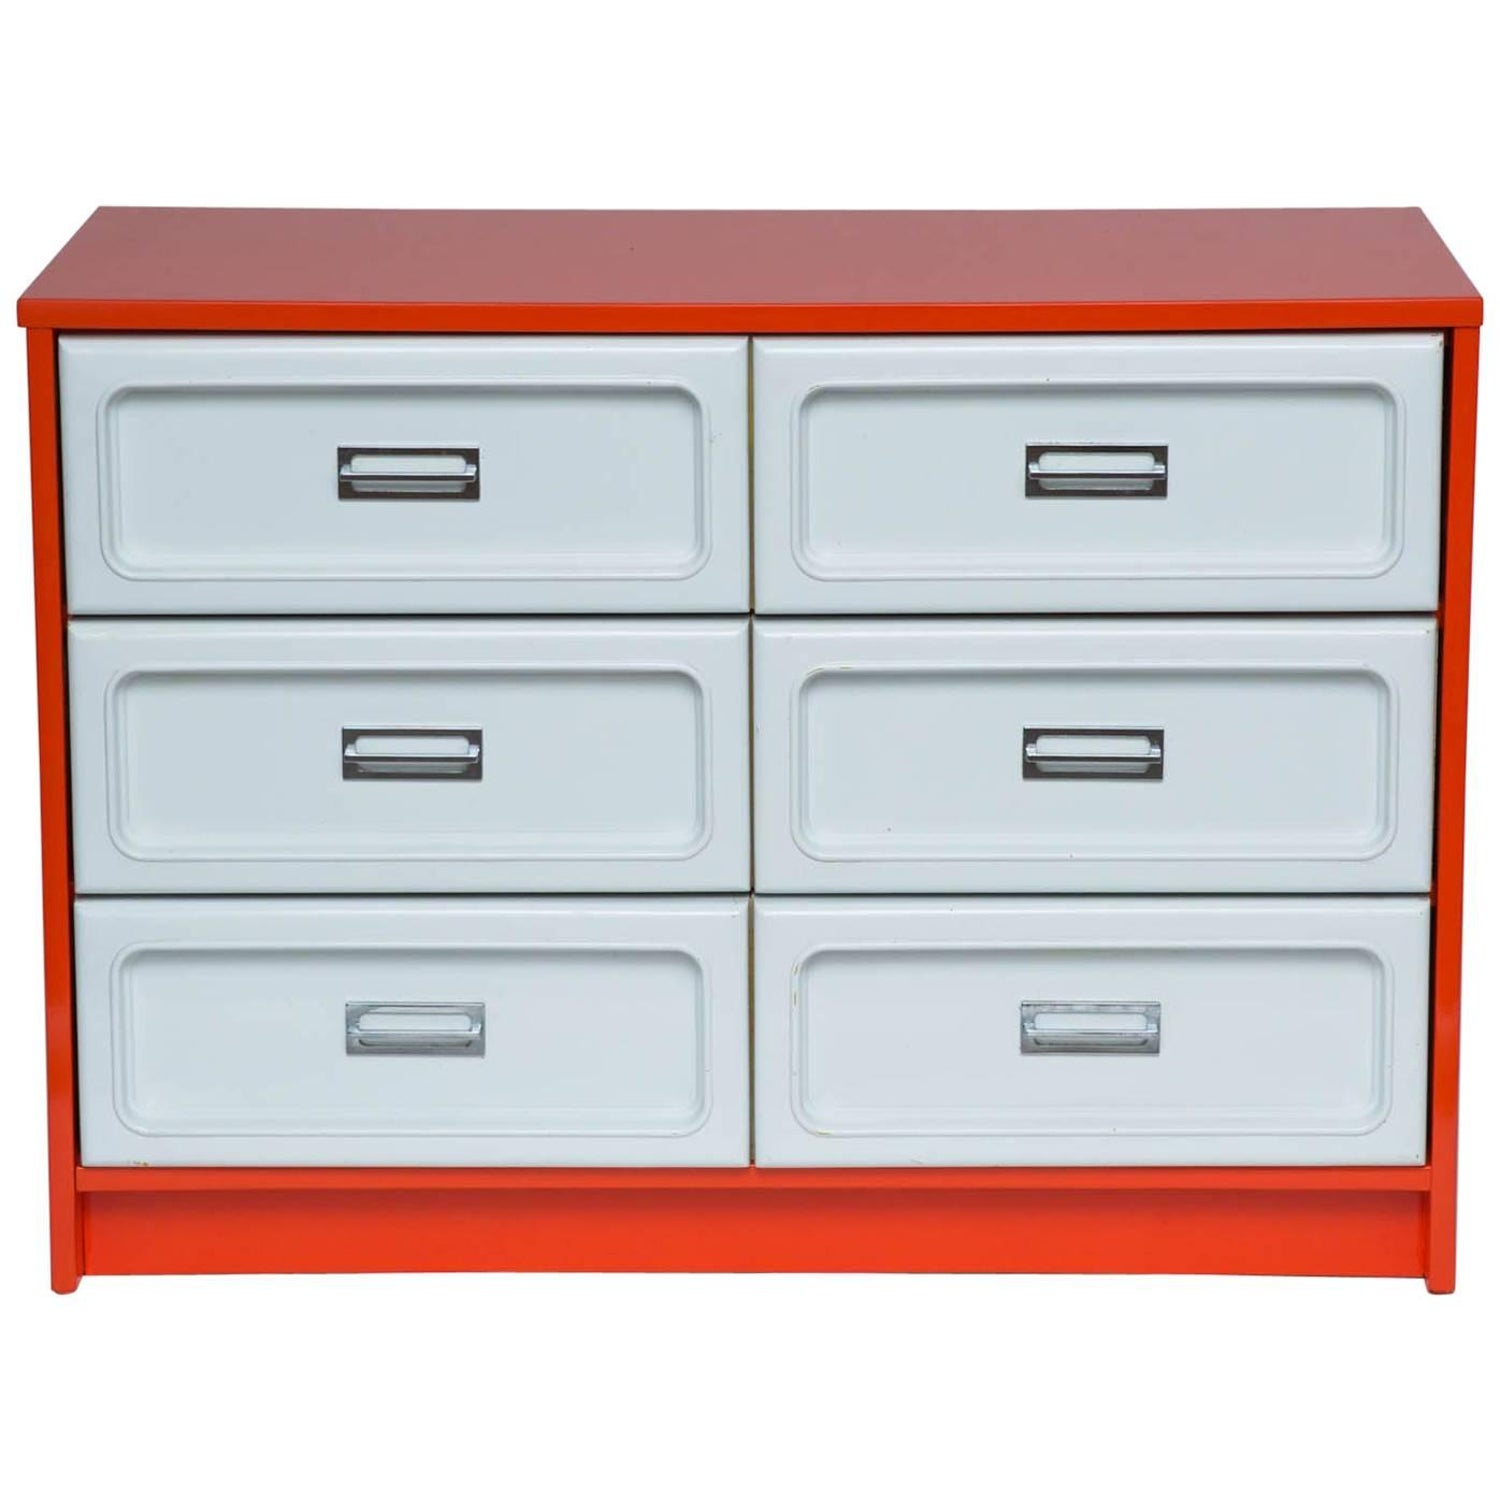 Bassett Furniture: Tables, Storage Cabinets & More - 23 For Sale at ...